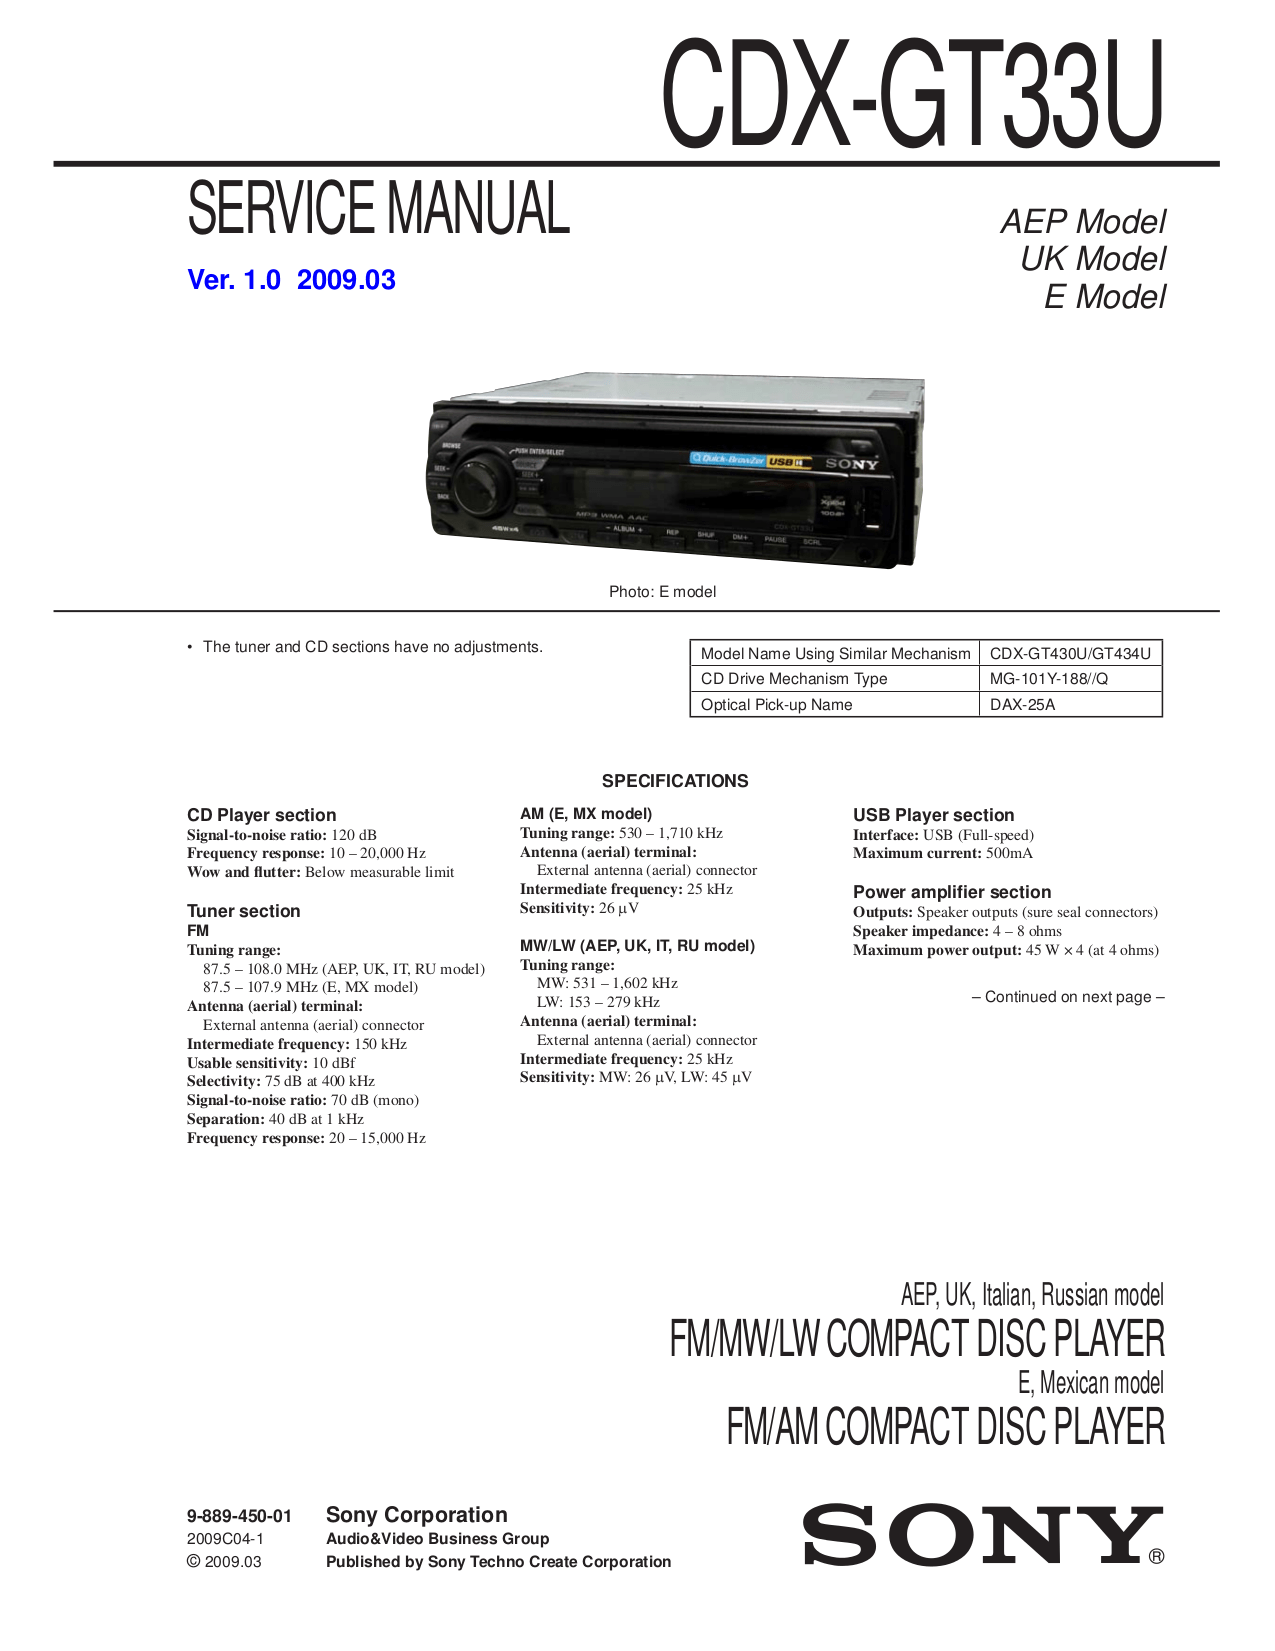 sony_cdx gt33u_ver 1.0_sm.pdf 0 sony cdx s2010 wiring diagram efcaviation com sony cdx-gt270mp wiring harness at aneh.co